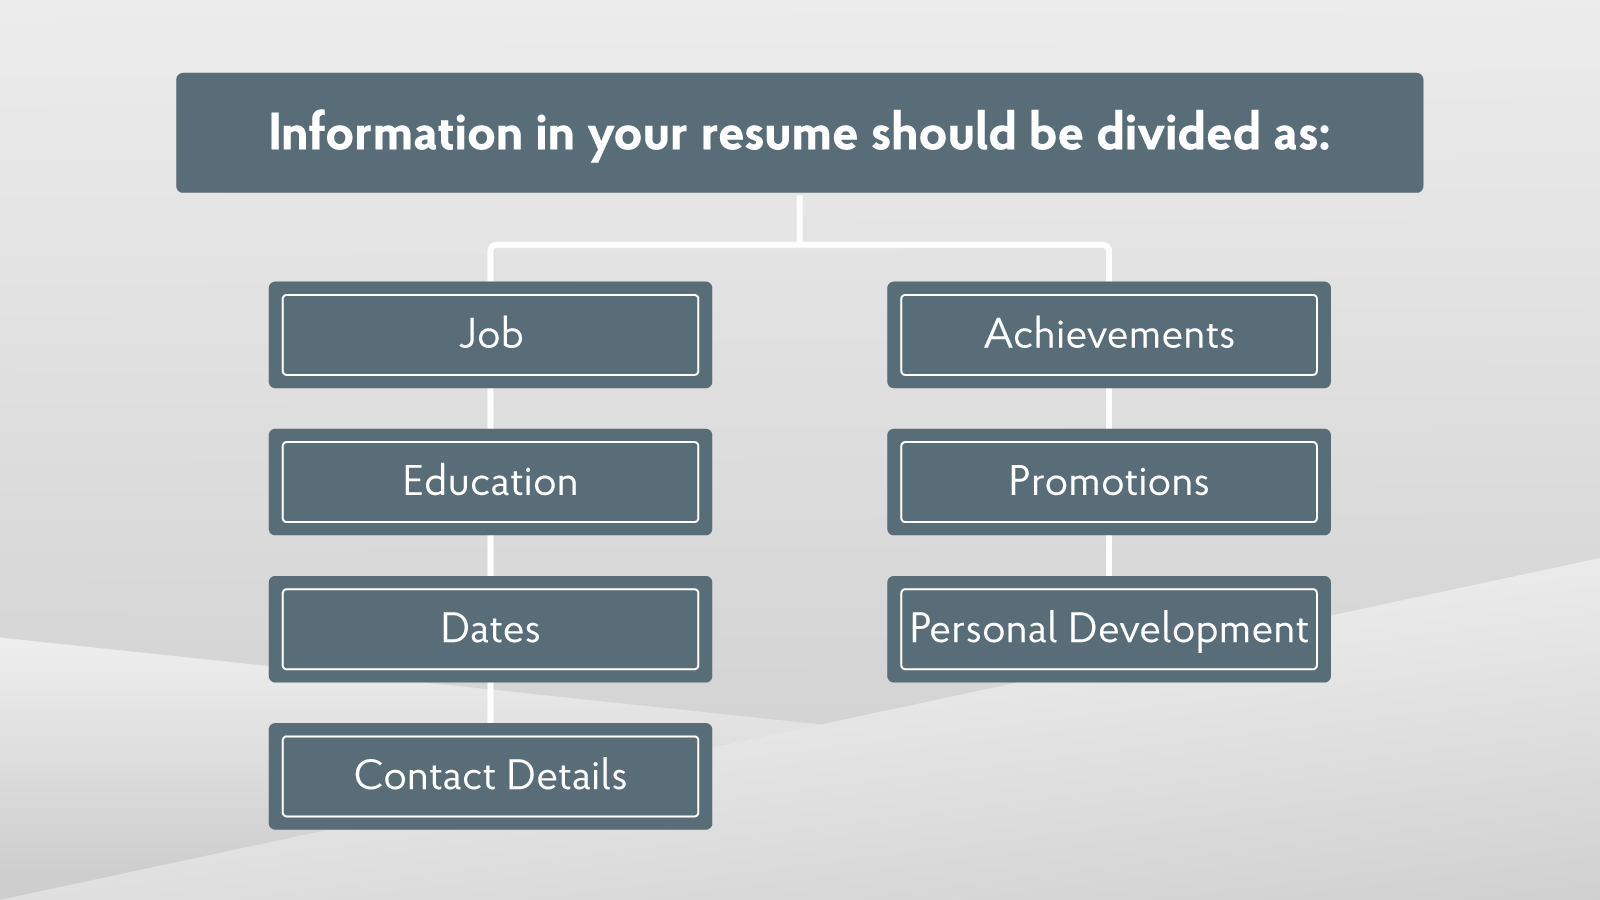 How To Write Your Achievements In The Resume